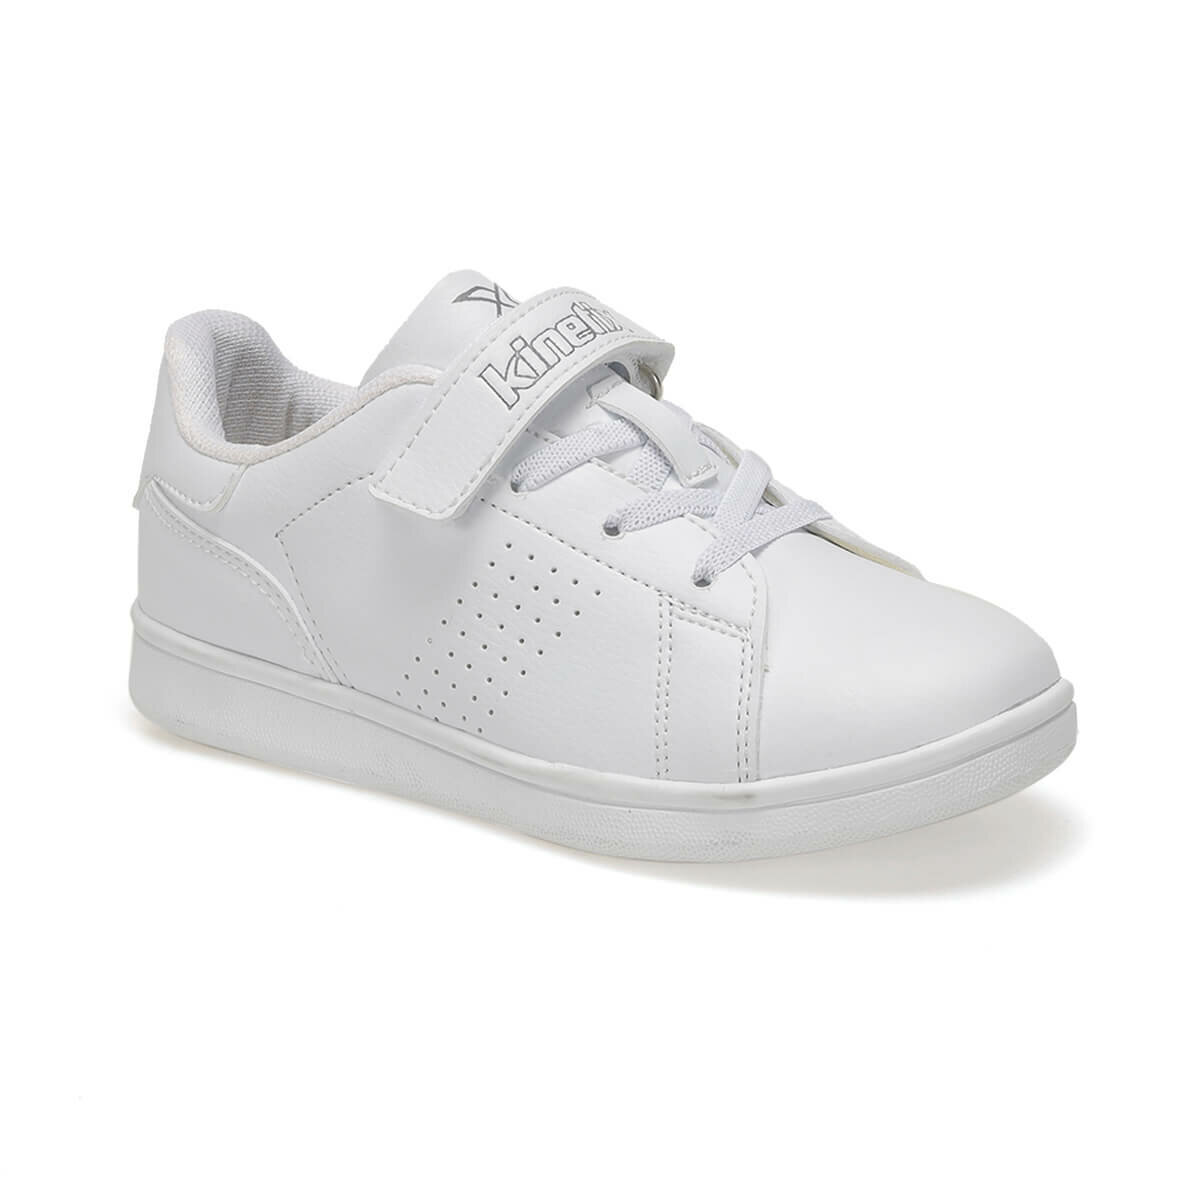 FLO PLAIN J 9PR White Female Child Sneaker Shoes KINETIX